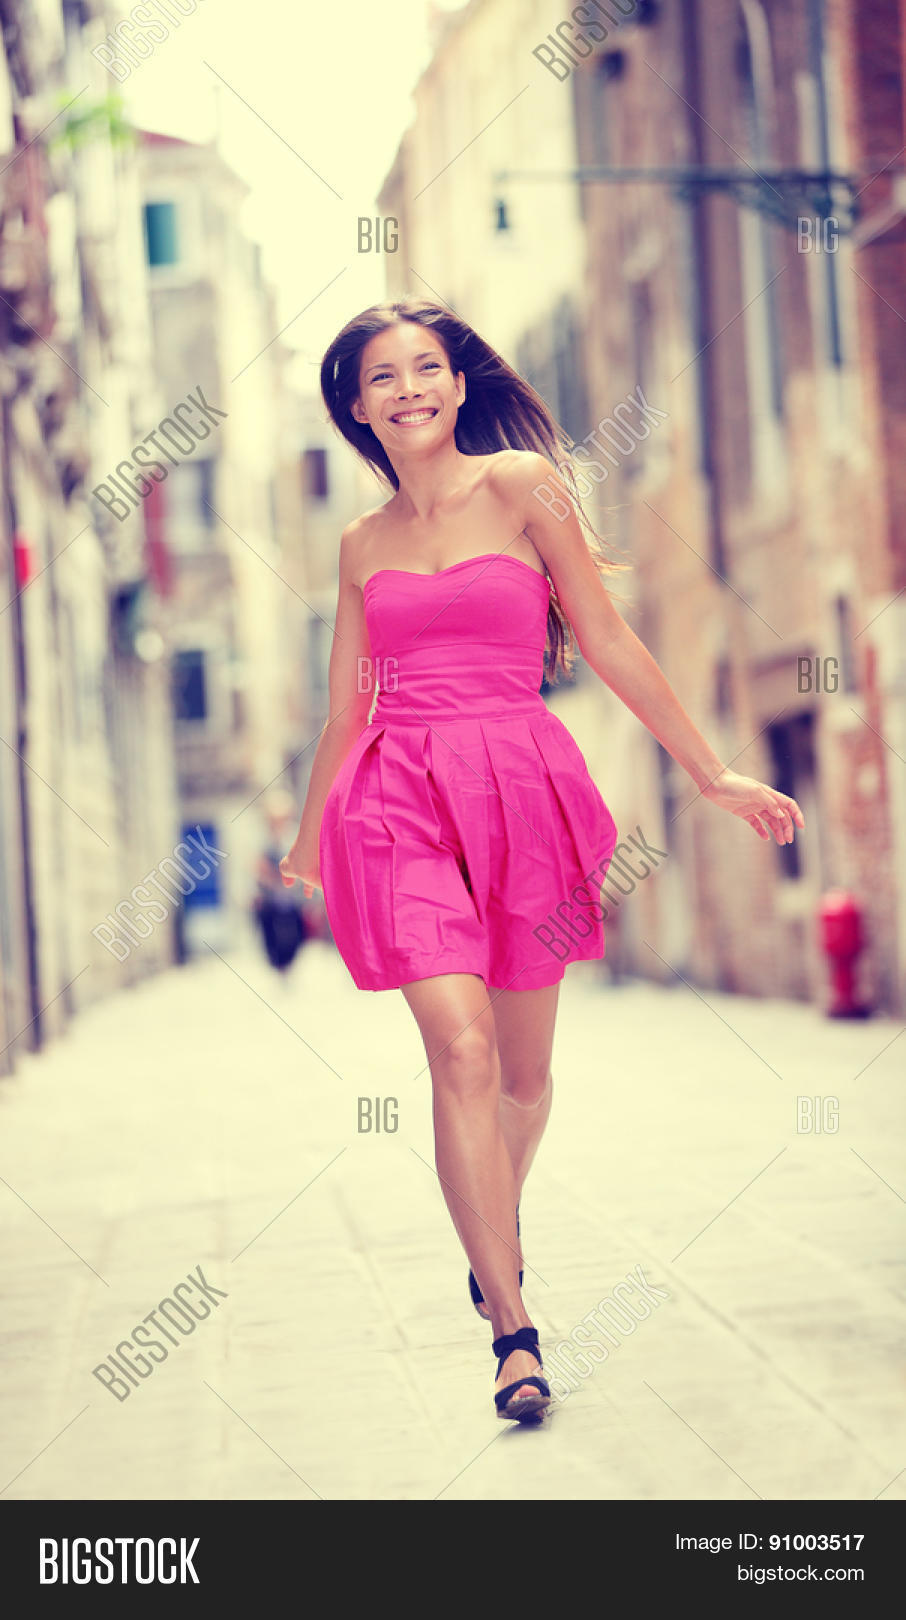 d68324562f1 Summer Dress. Happy Image & Photo (Free Trial) | Bigstock